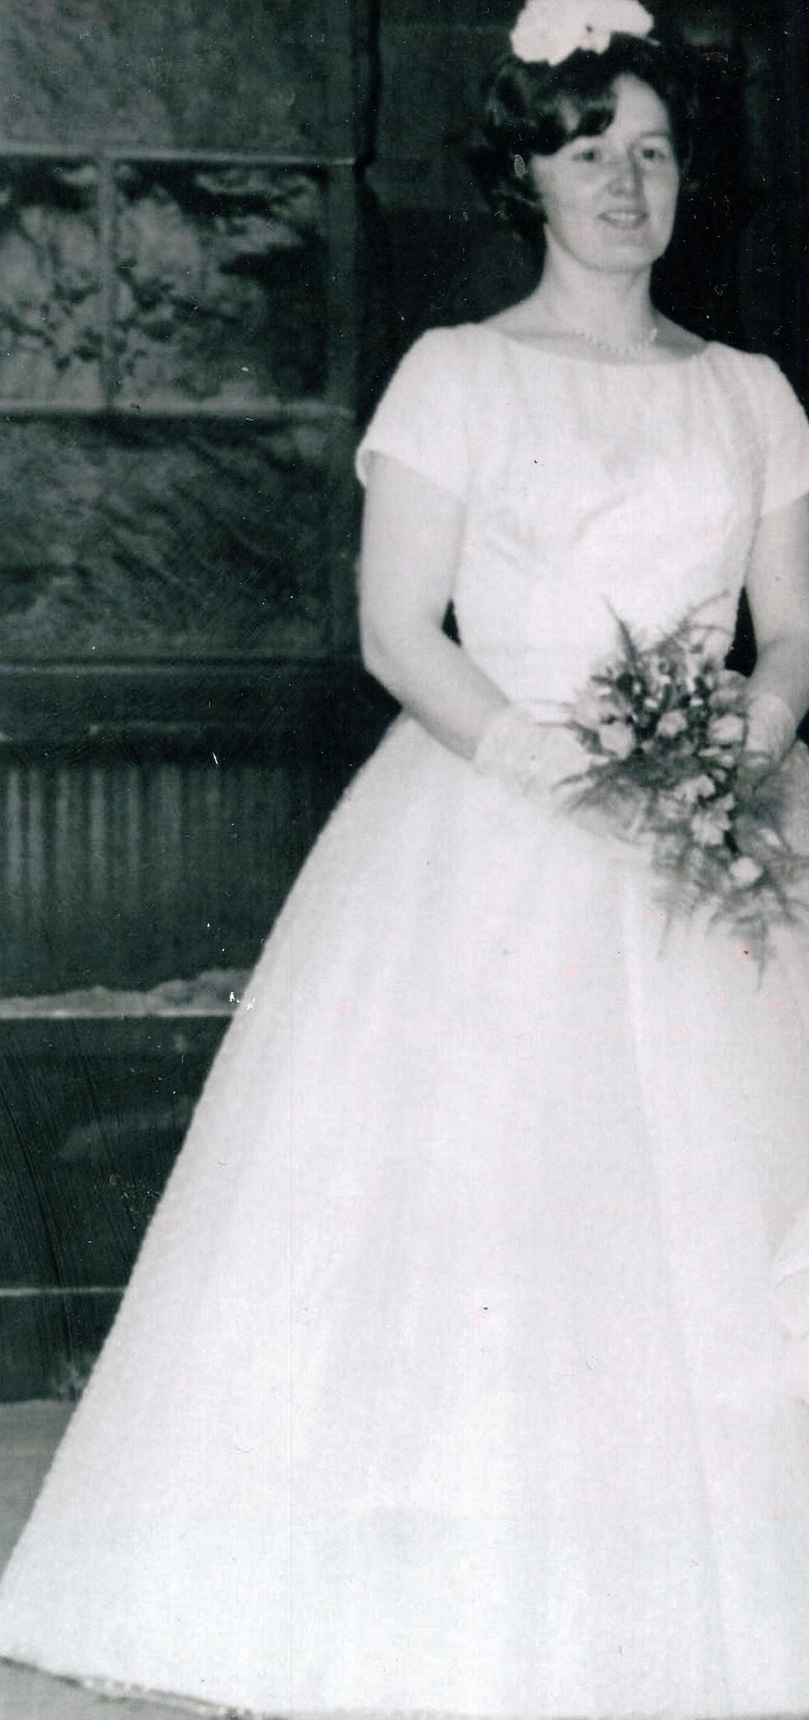 Bridesmaid Holding Bouquet Of Flowers c.1960